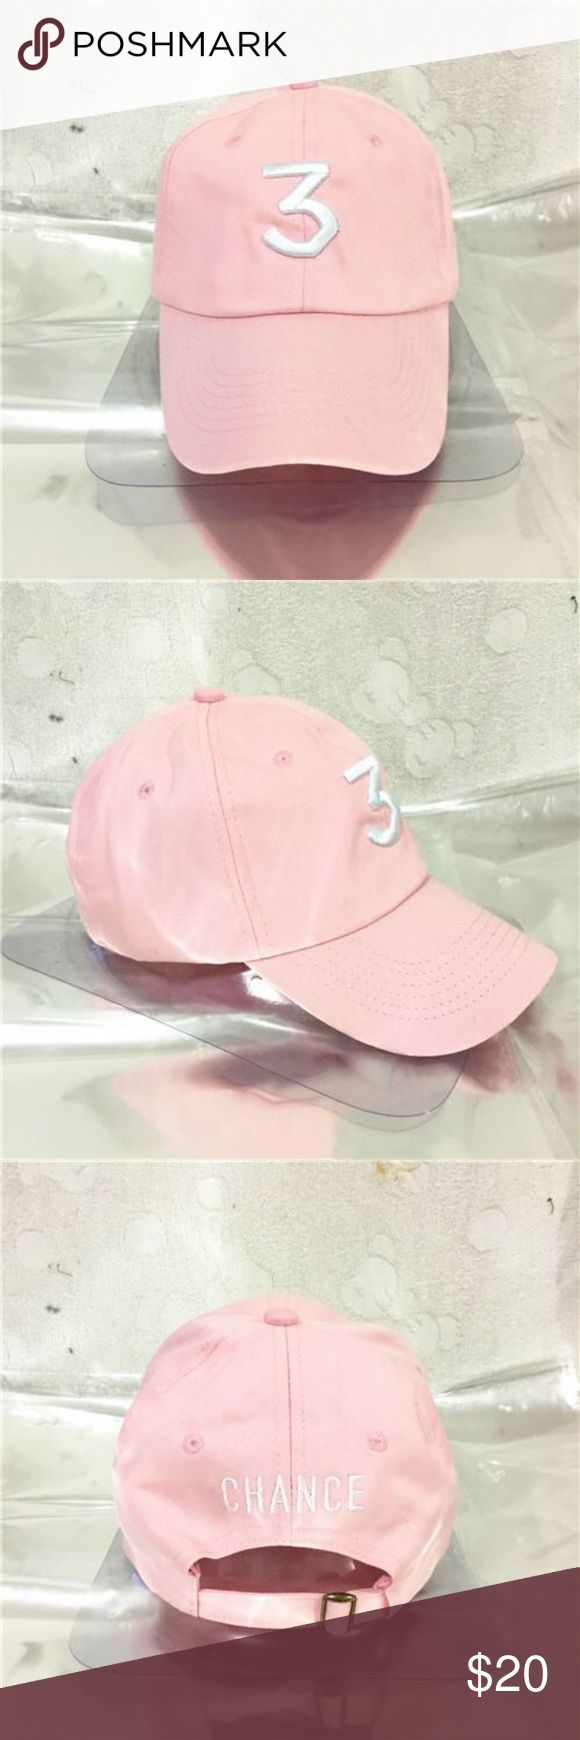 ** CHANCE 3 THE RAPPER KANYE WEST BASEBALL CAP STYLISH BRAND NEW, NEVER BEEN WORN PINK CHANCE THE RAPPER HAT Kanye West Accessories Hats